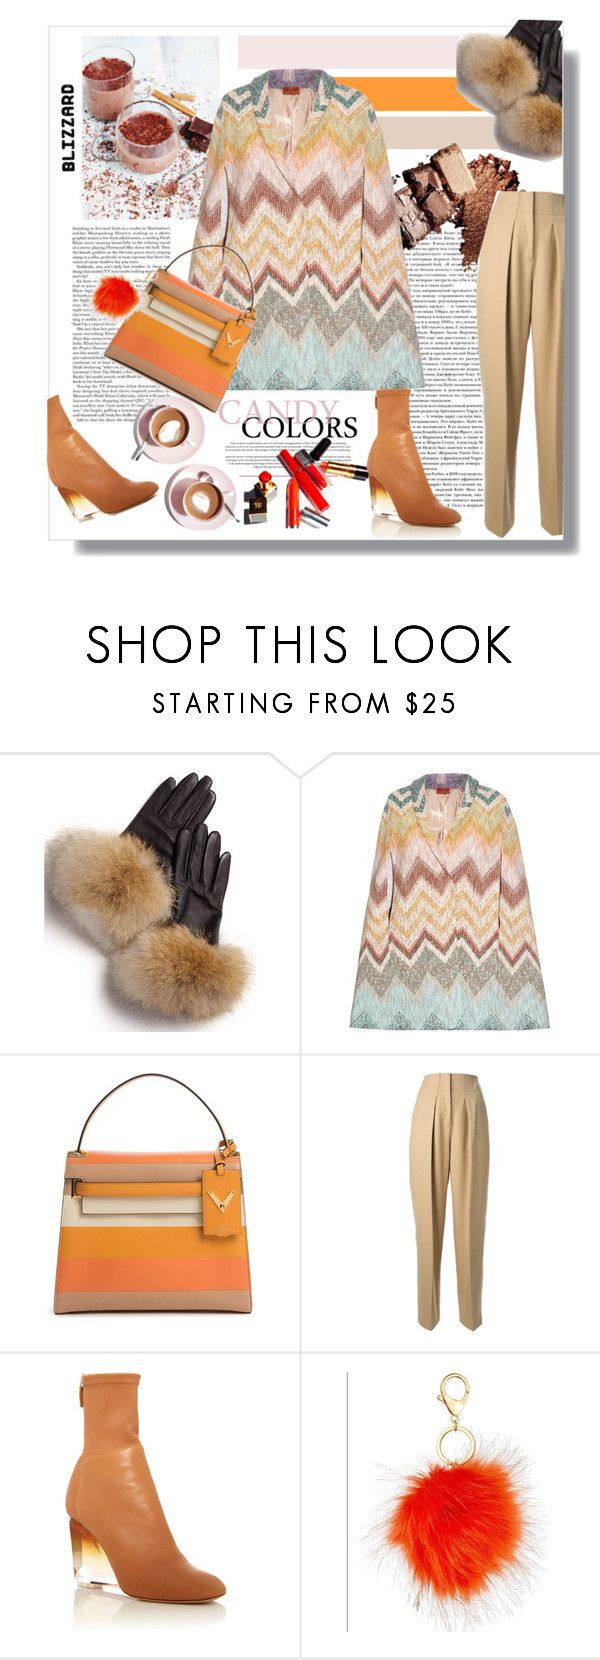 """""""Don't care about the cold..."""" by theitalianglam ❤ liked on Polyvore featuring moda, Jamie Oliver, Martha Stewart, FRR, Missoni, Valentino, 3.1 Phillip Lim, Monique Lhuillier, valentino e MoniqueLhuillier"""